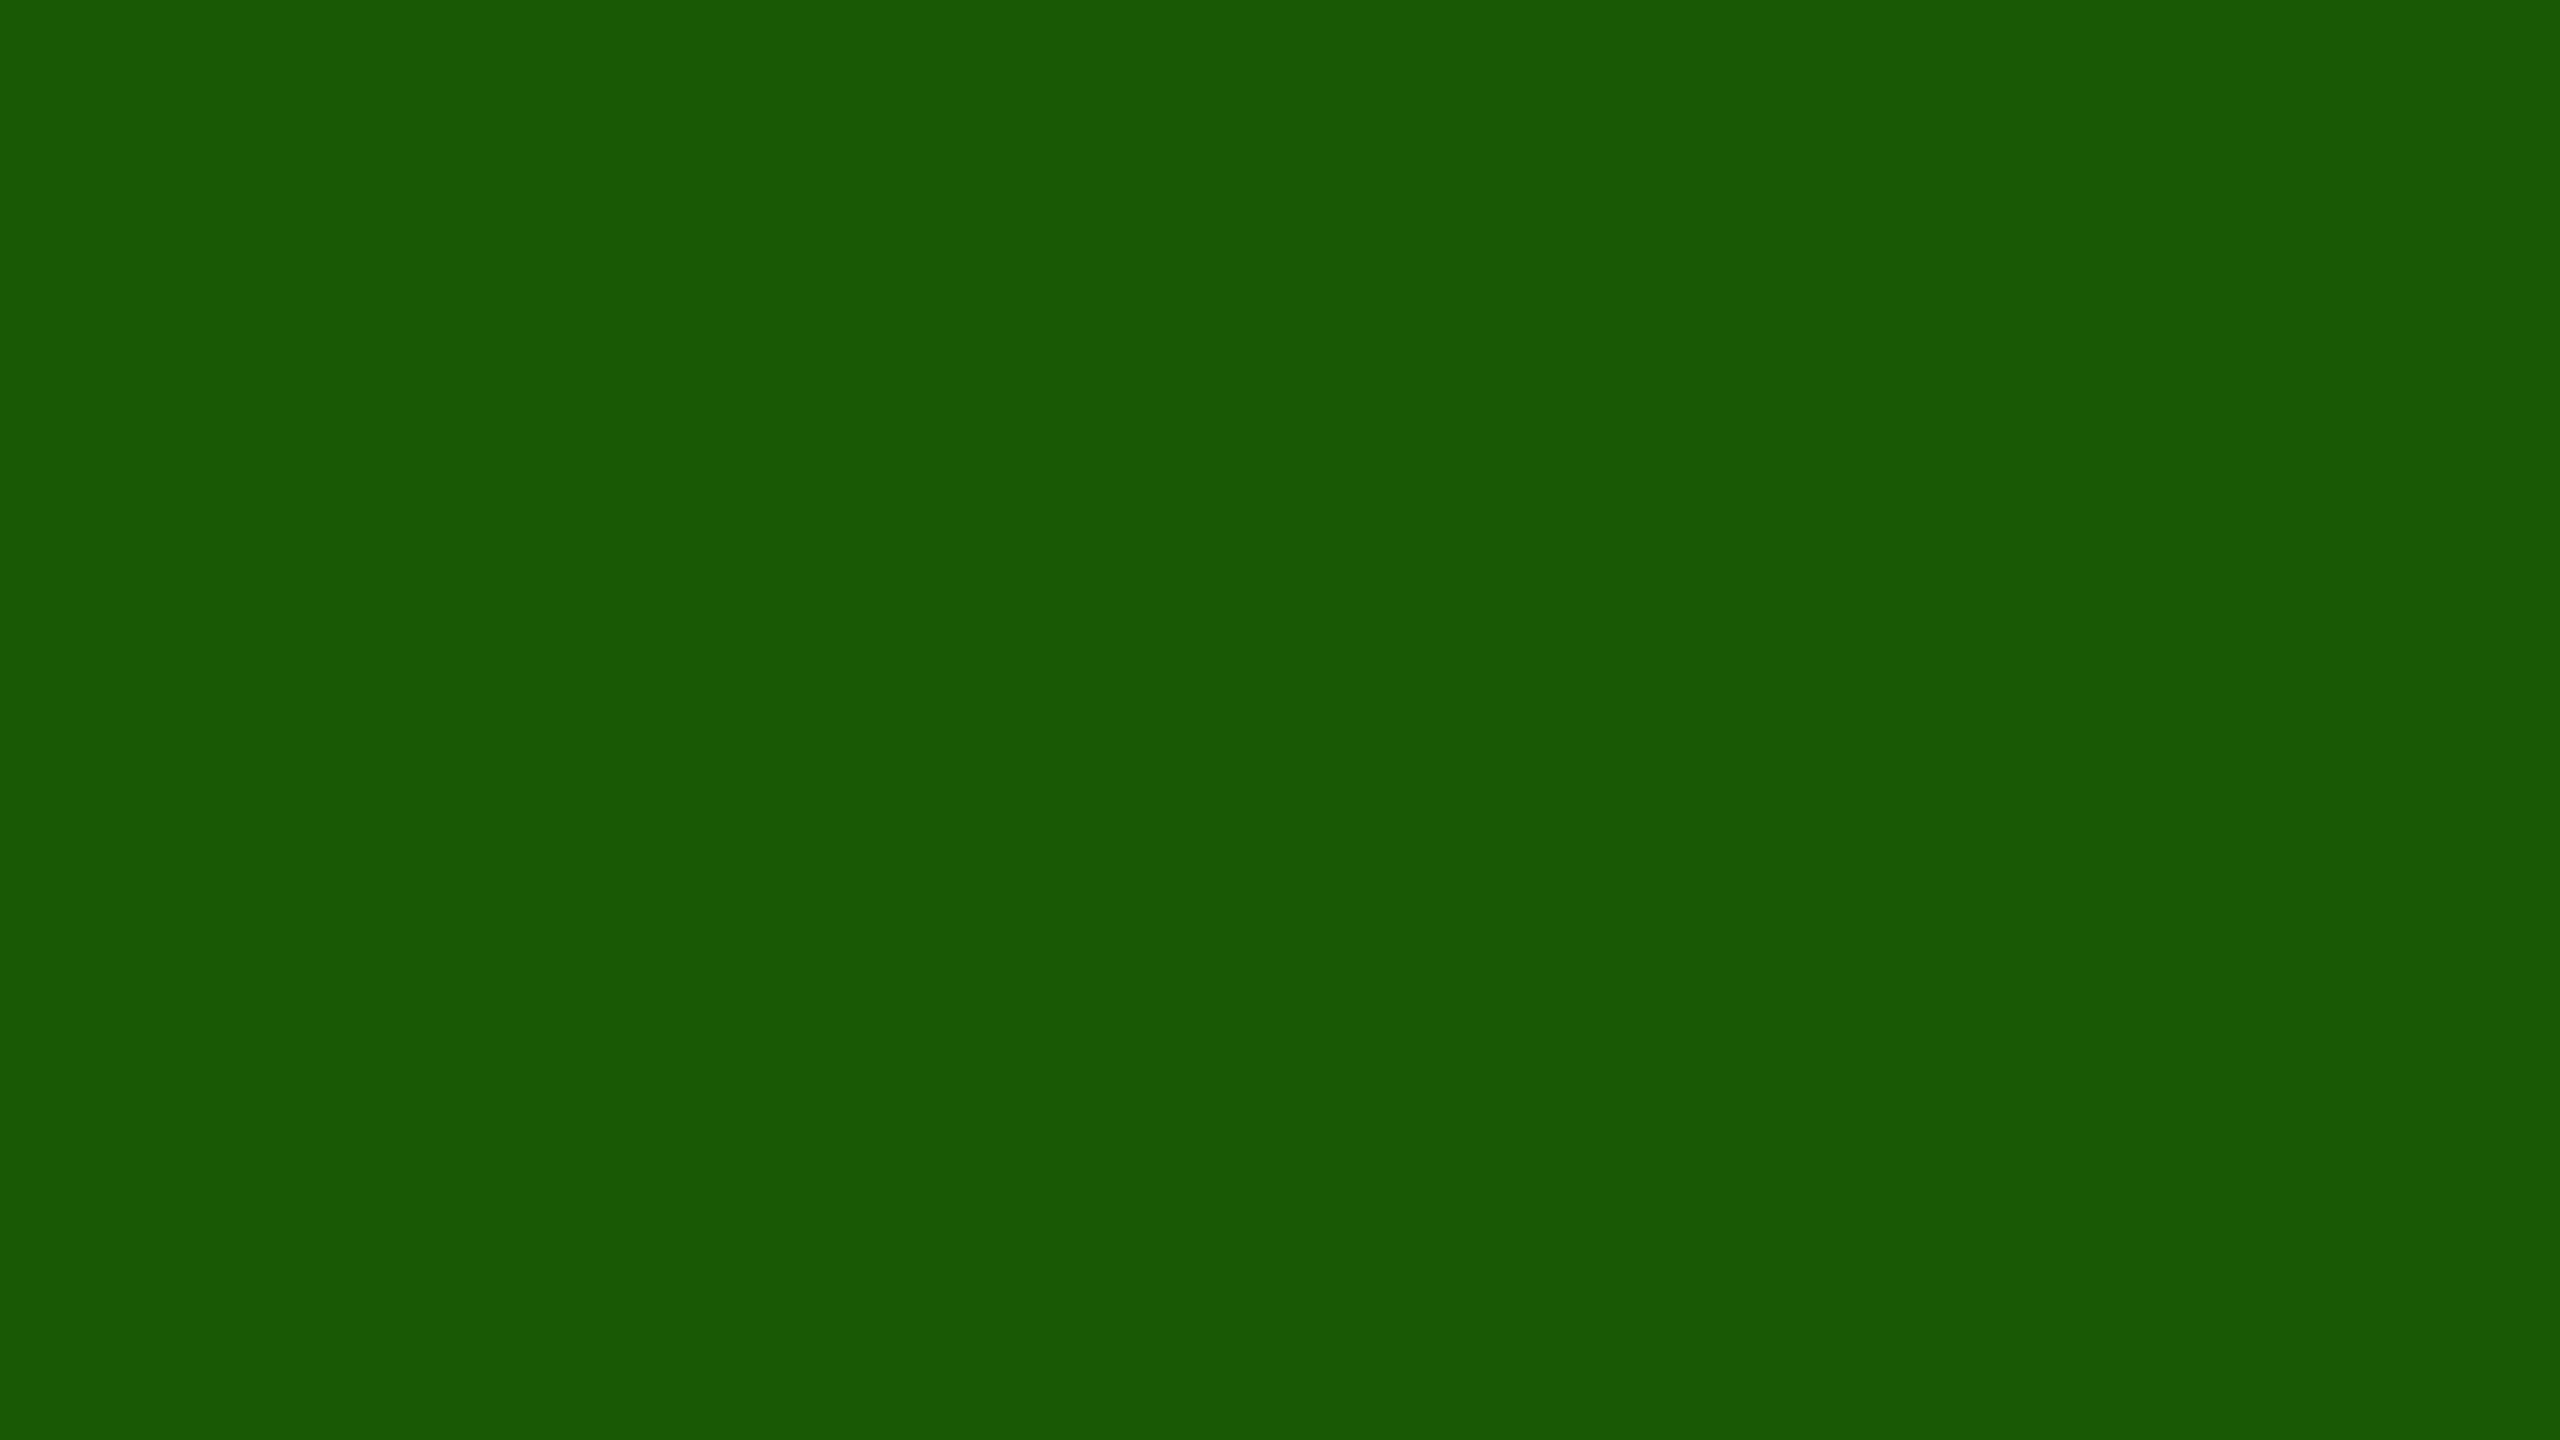 2560x1440 Lincoln Green Solid Color Background